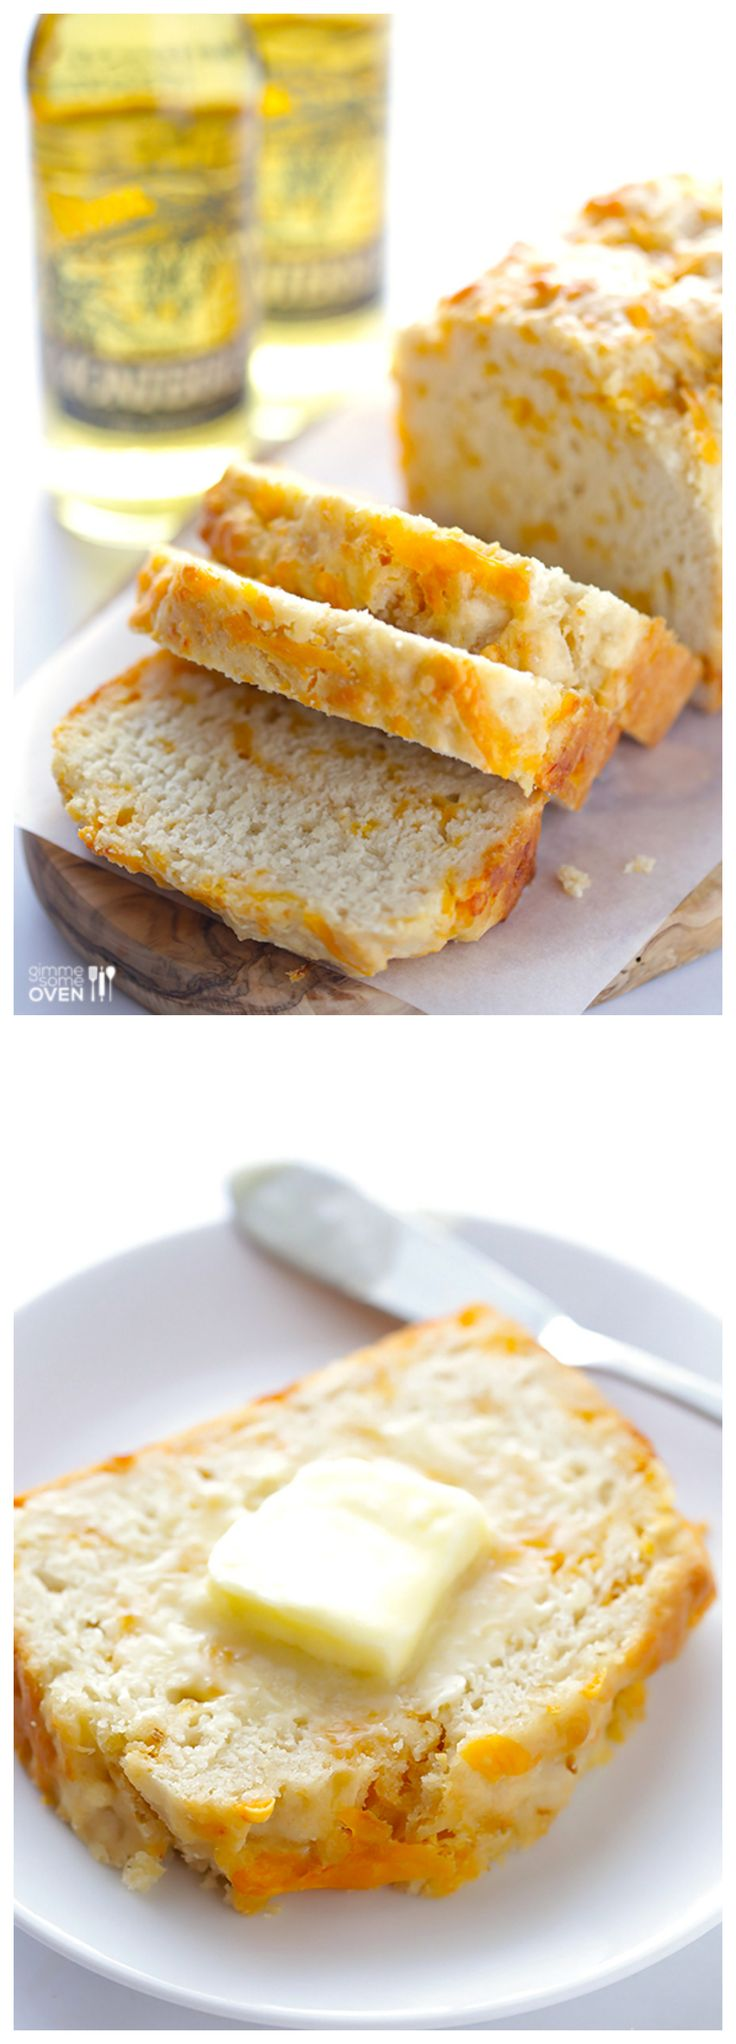 This Garlic Cheddar Beer Bread is super easy to make, and super tasty. | gimmesomeoven.com #bread #recipe